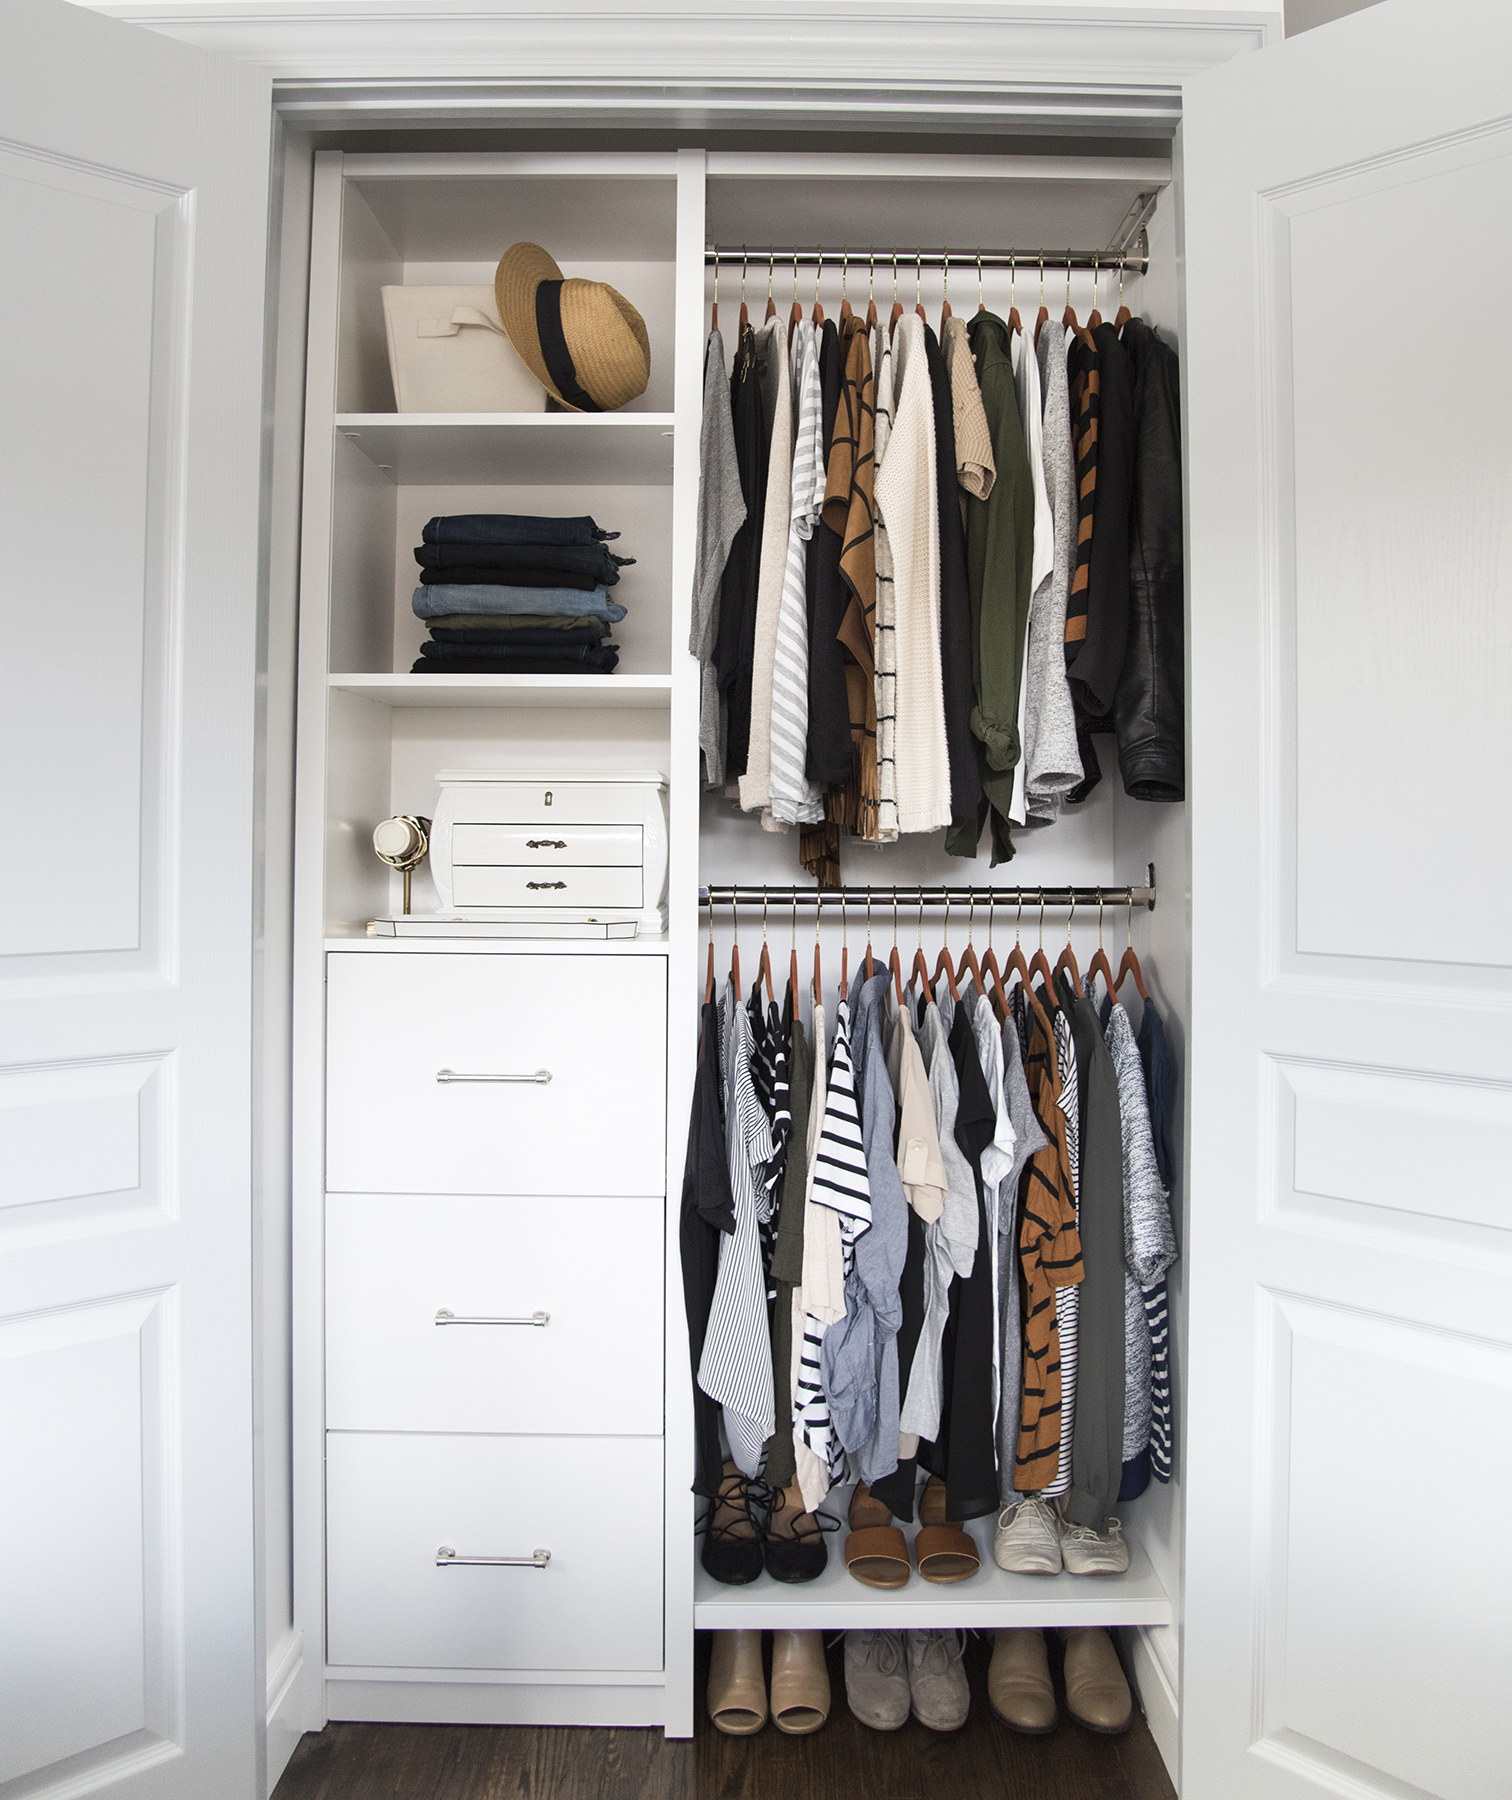 Room for Tuesday closet after